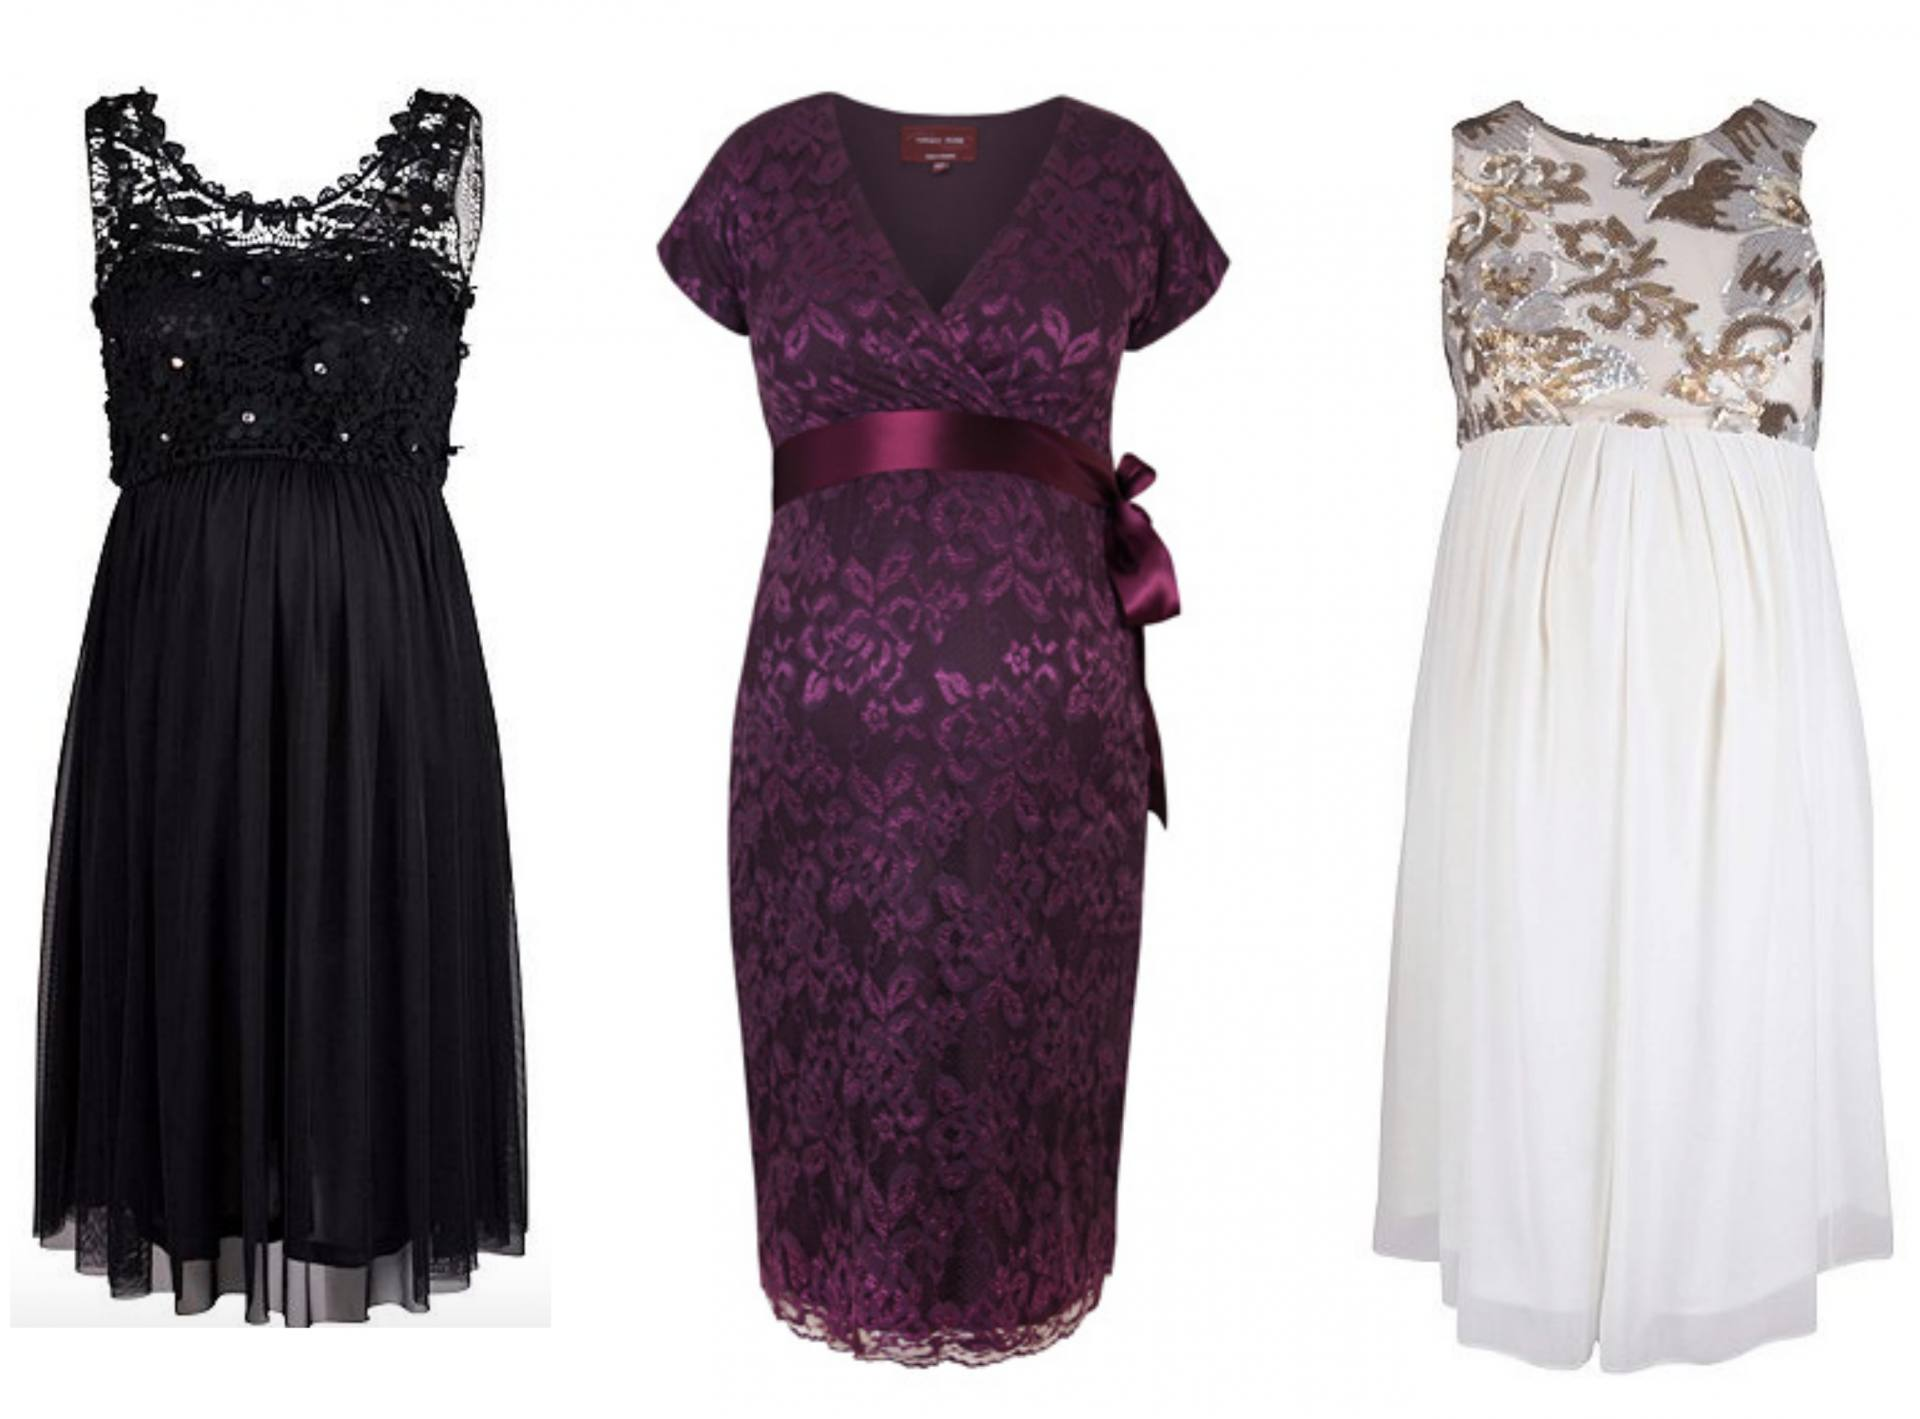 Christmas Party Dress Inspiration (with maternity options too!)